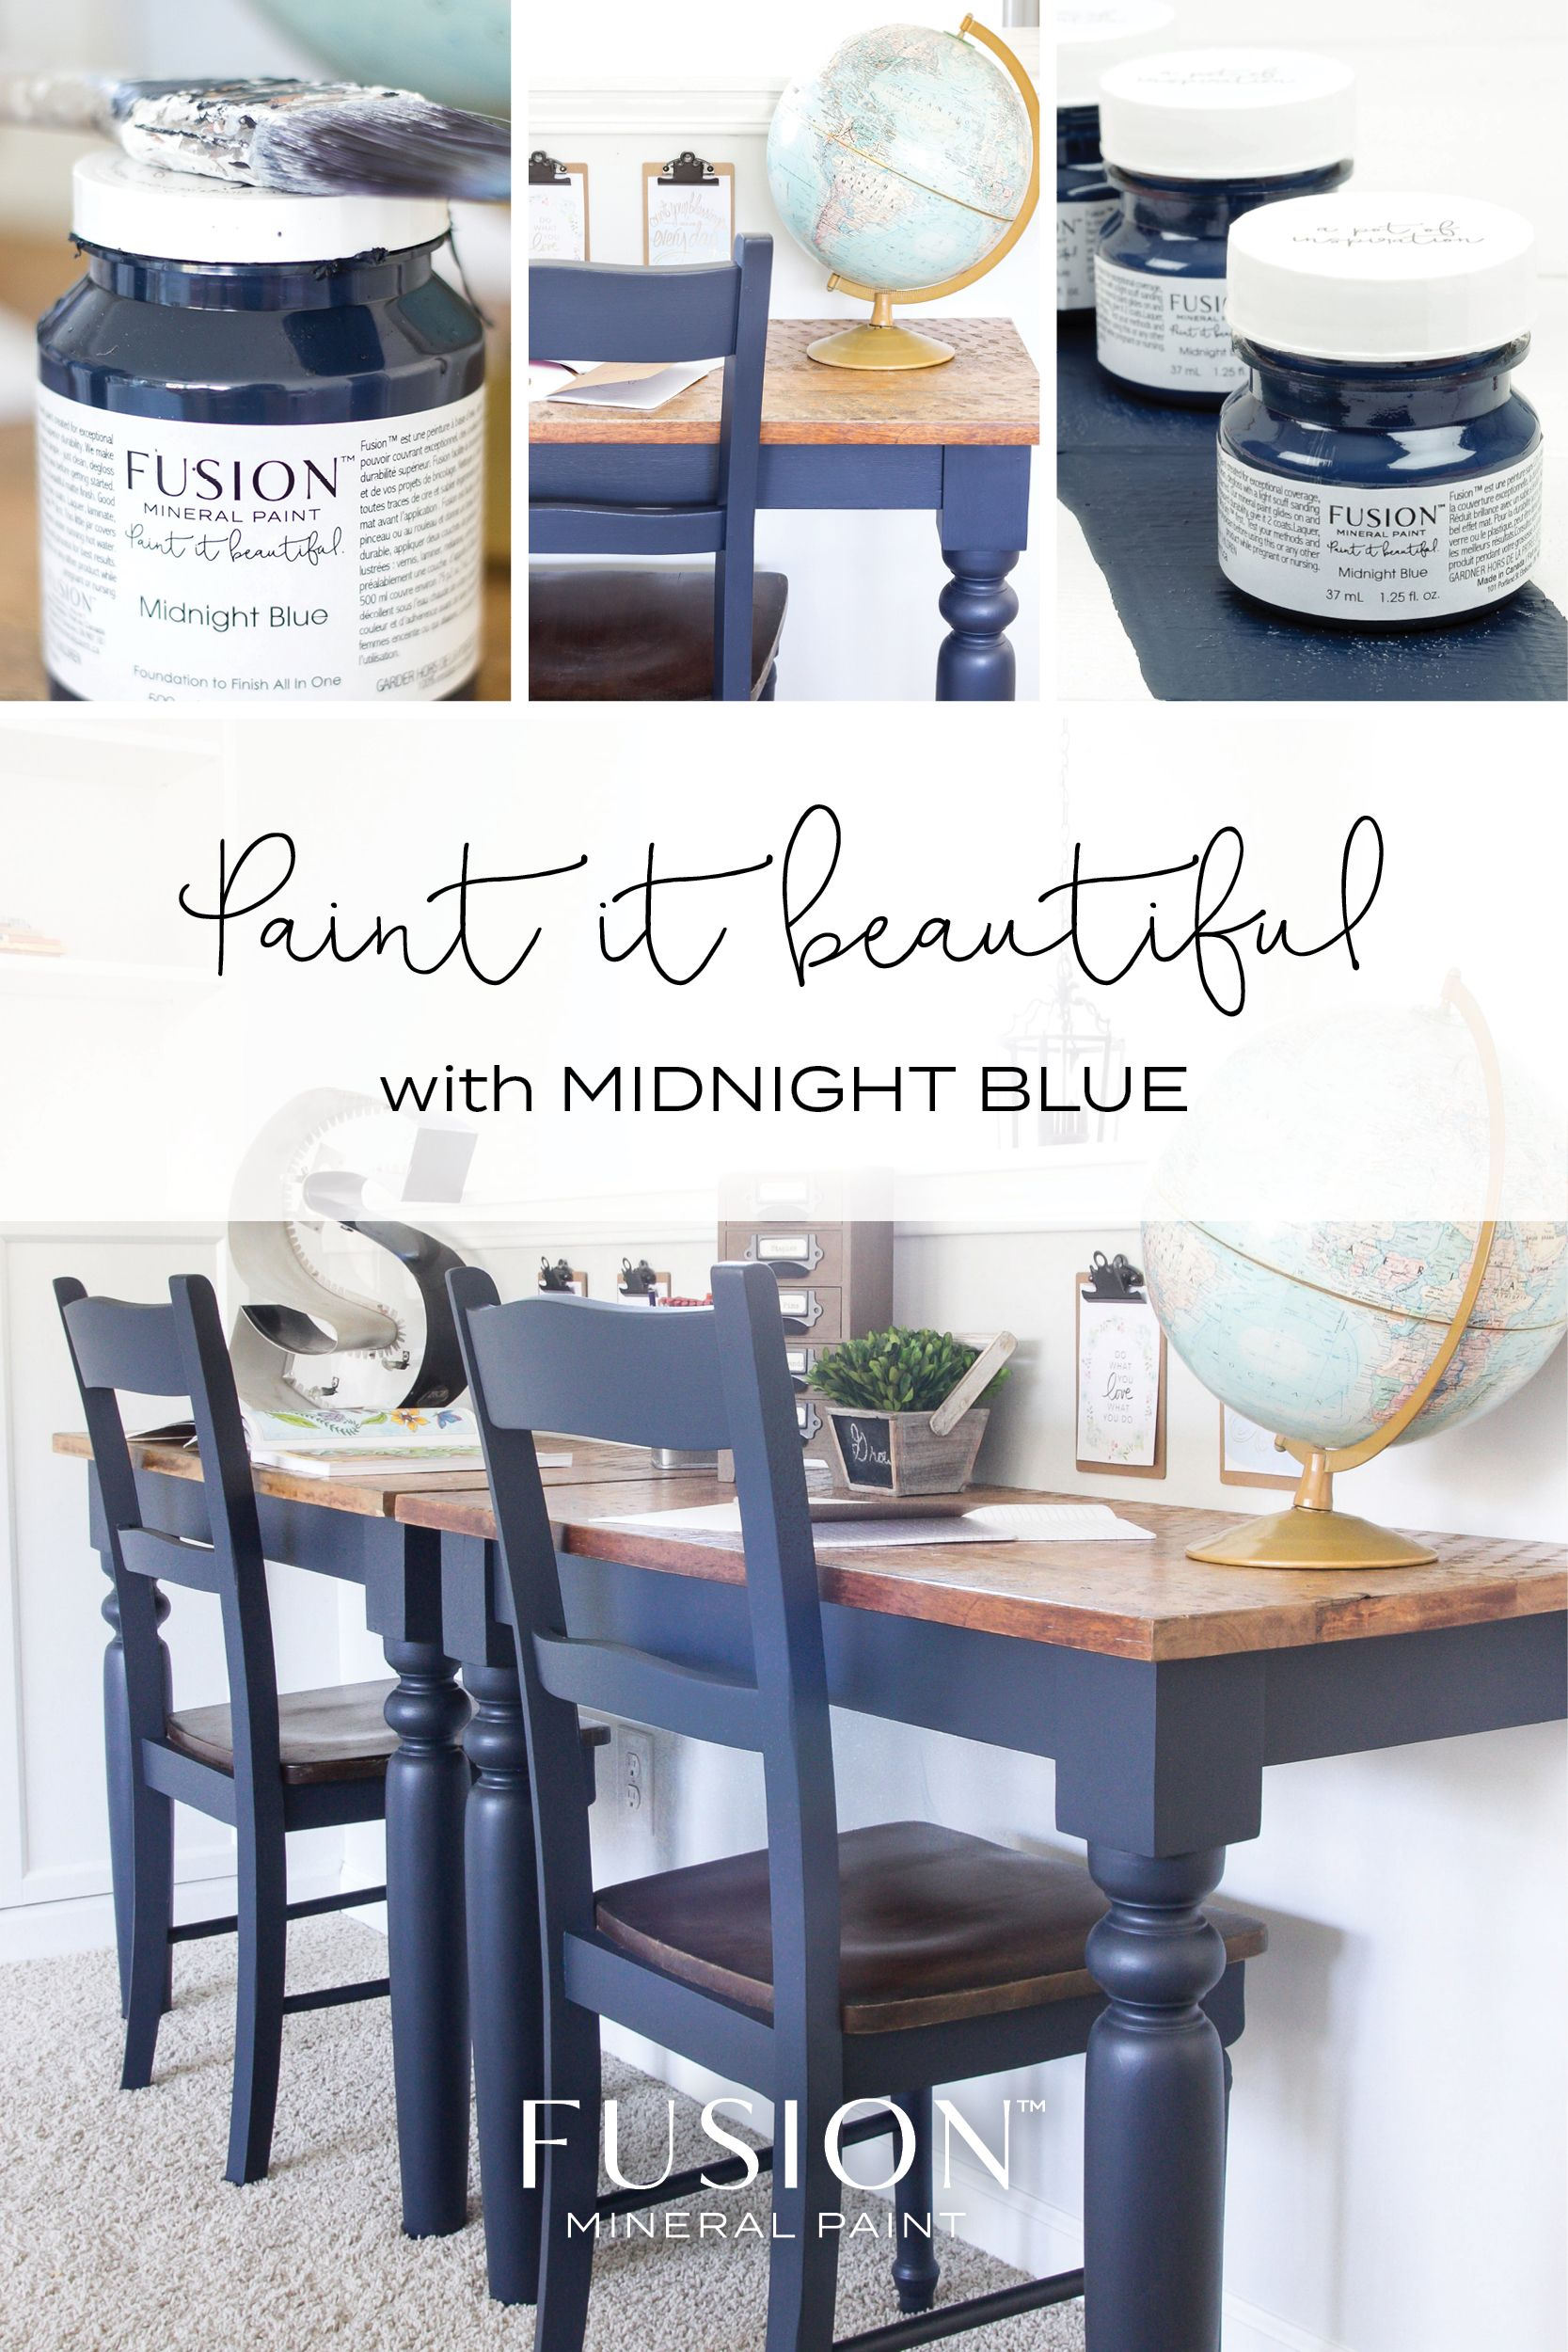 Colours Fusion Mineral Paint Painted Dining Table Painted Kitchen Tables Painted Dining Room Table